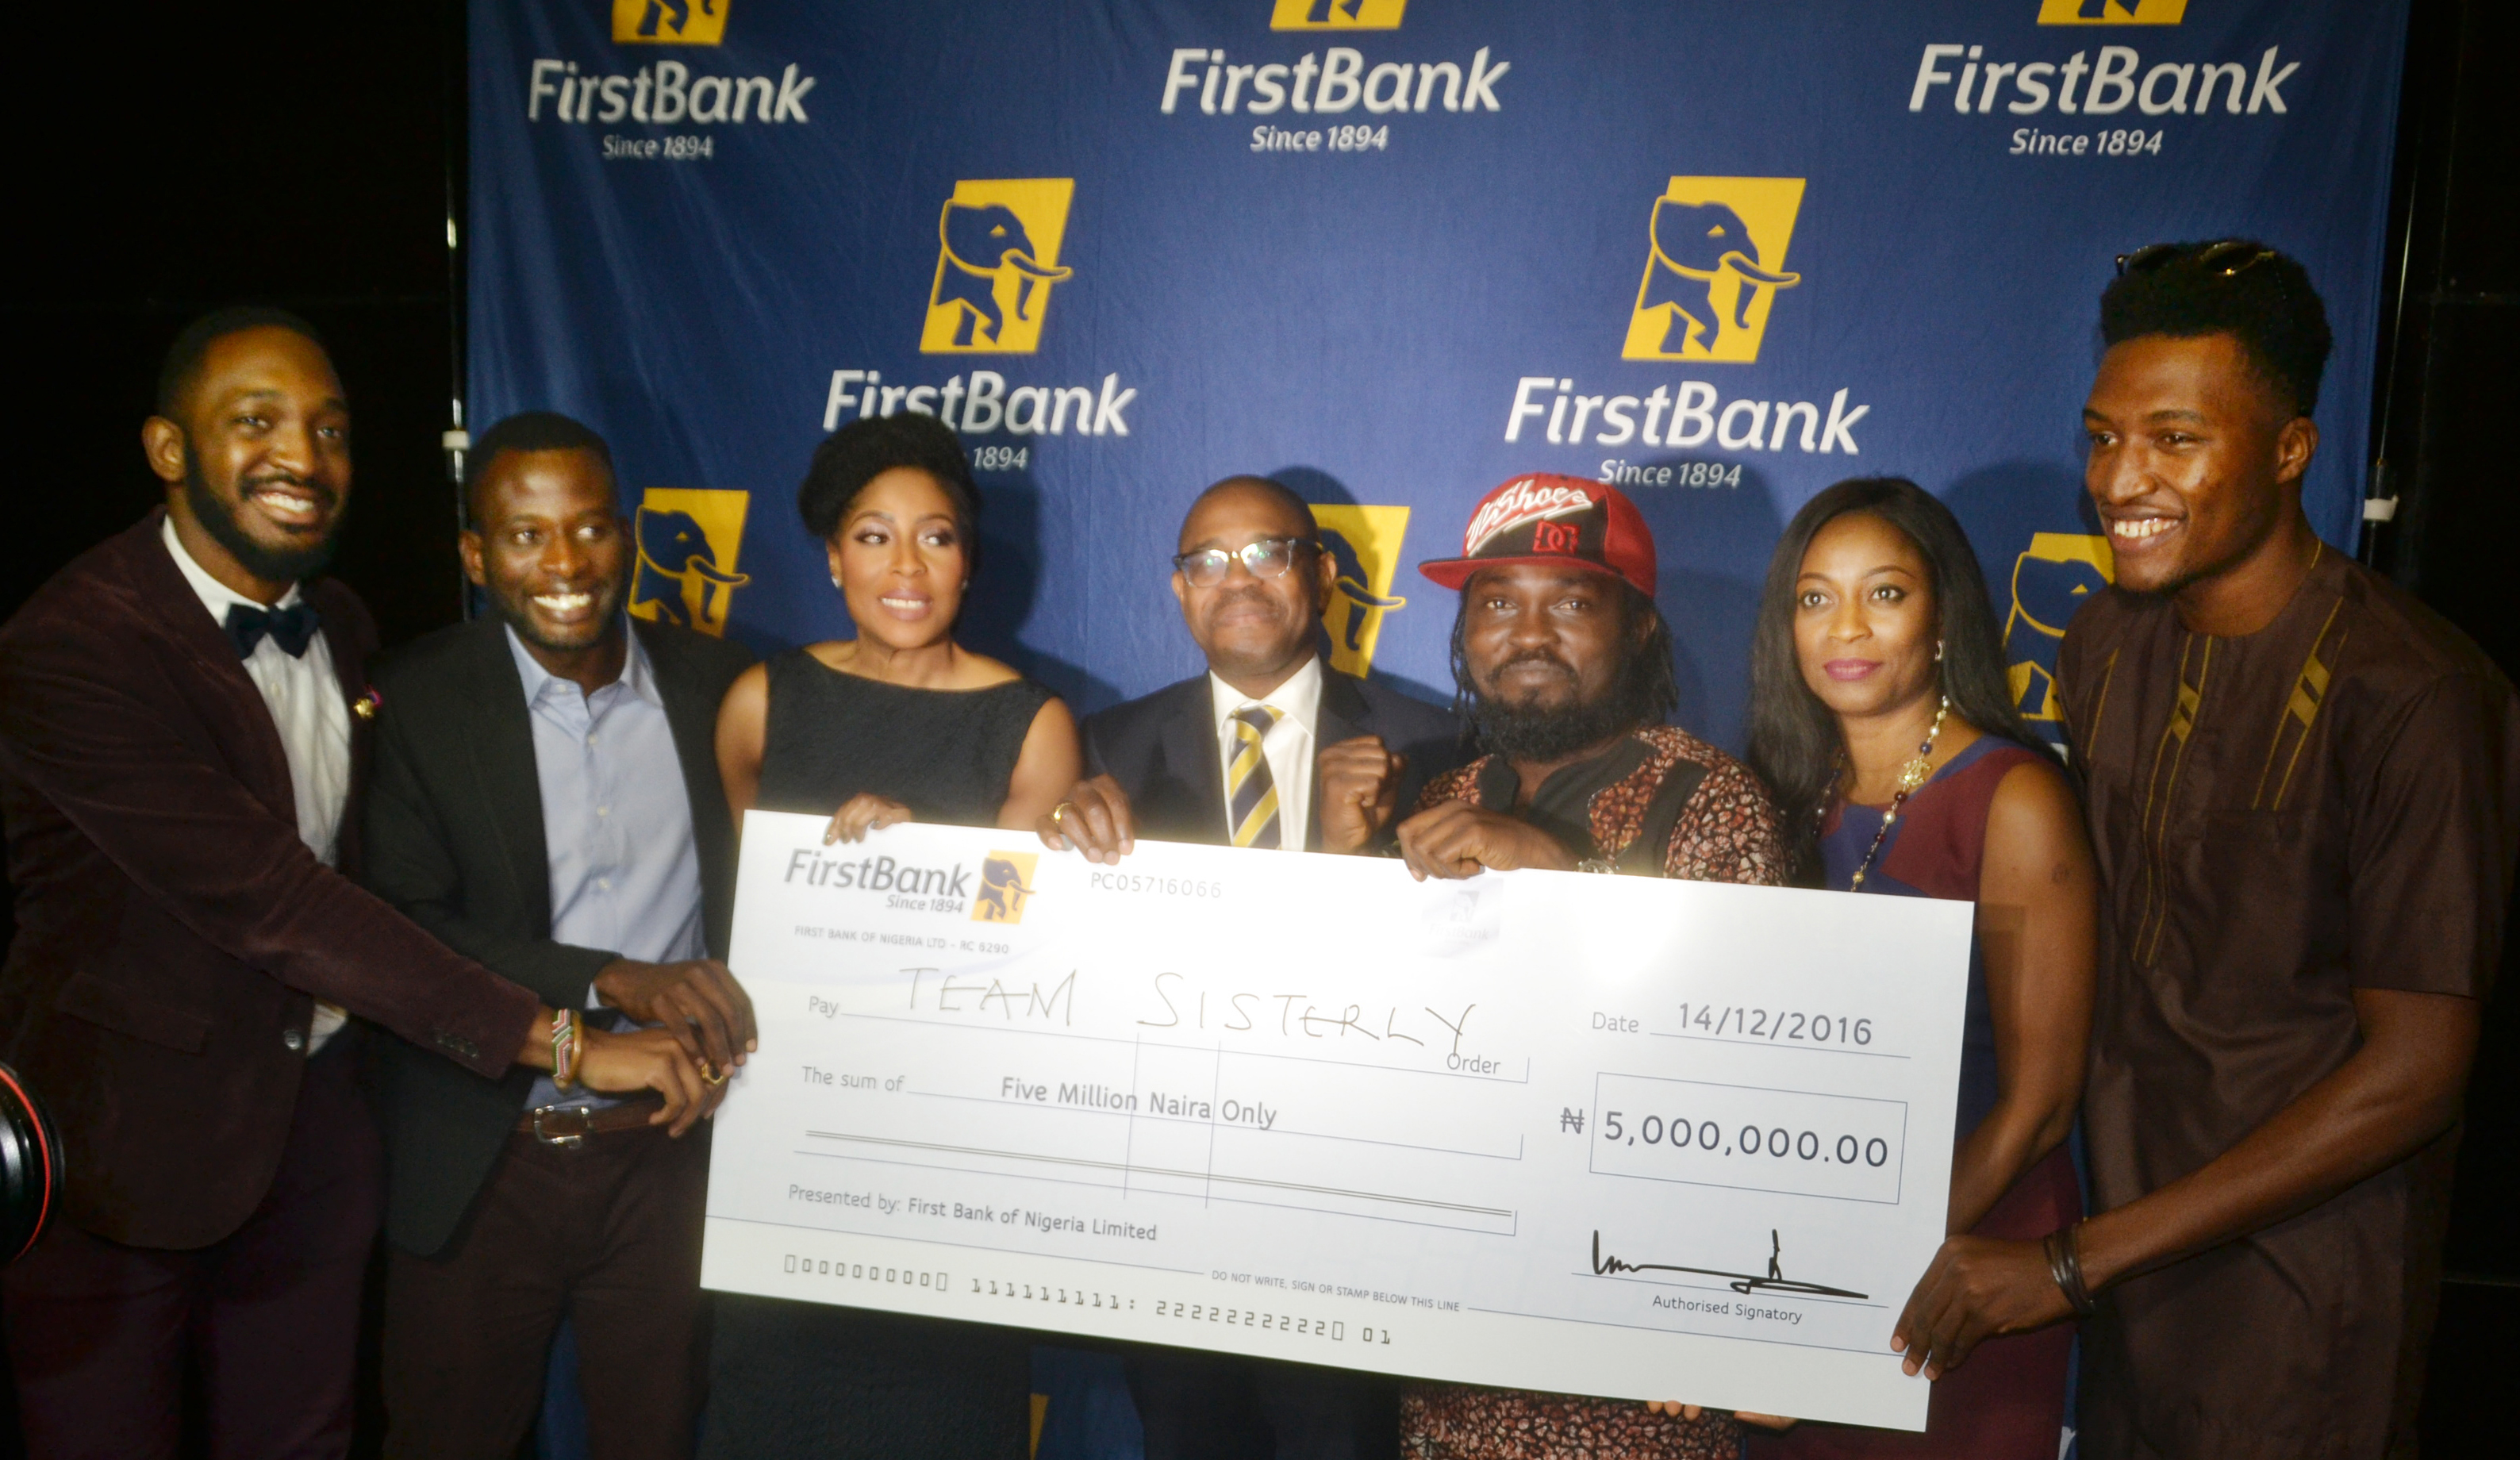 Deputy Managing Director, FirstBank, Gbenga Shobo (Middle); Executive Chairman and CEO of EbonyLife TV, Mo Abudu ( third left); Group Head, Marketing and Corporate Communications, FirstBank, Folake Ani-Mumuney (second right) presenting the star prize to the winners of the FirstBank FirstStars Reality TV show (Team Sisterly) .